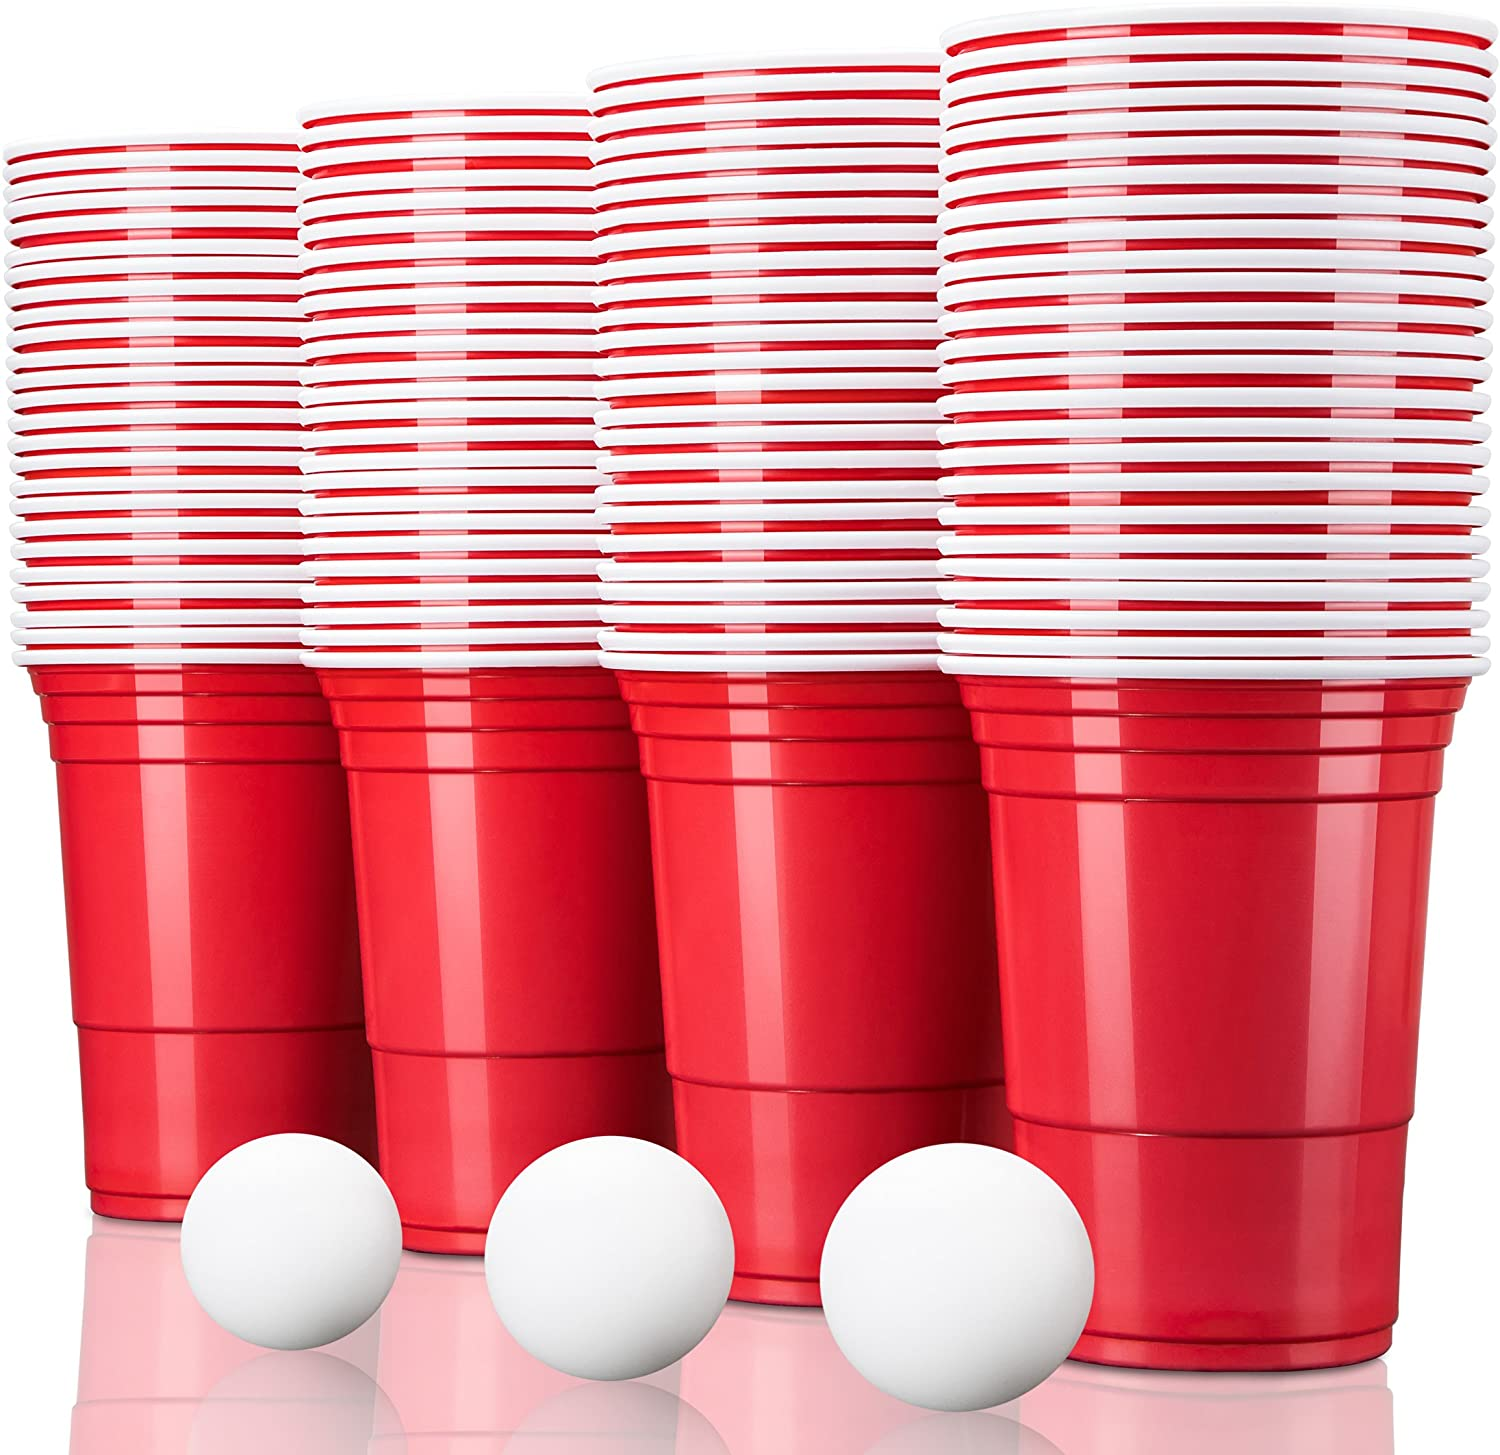 50 Pack with 6 Balls Extra Strong Quality for Softdrinks Beer Cola Cocktails Beer Pong TRESKO/® Red American Party Cups Drinking Cups Capacity 473 ml